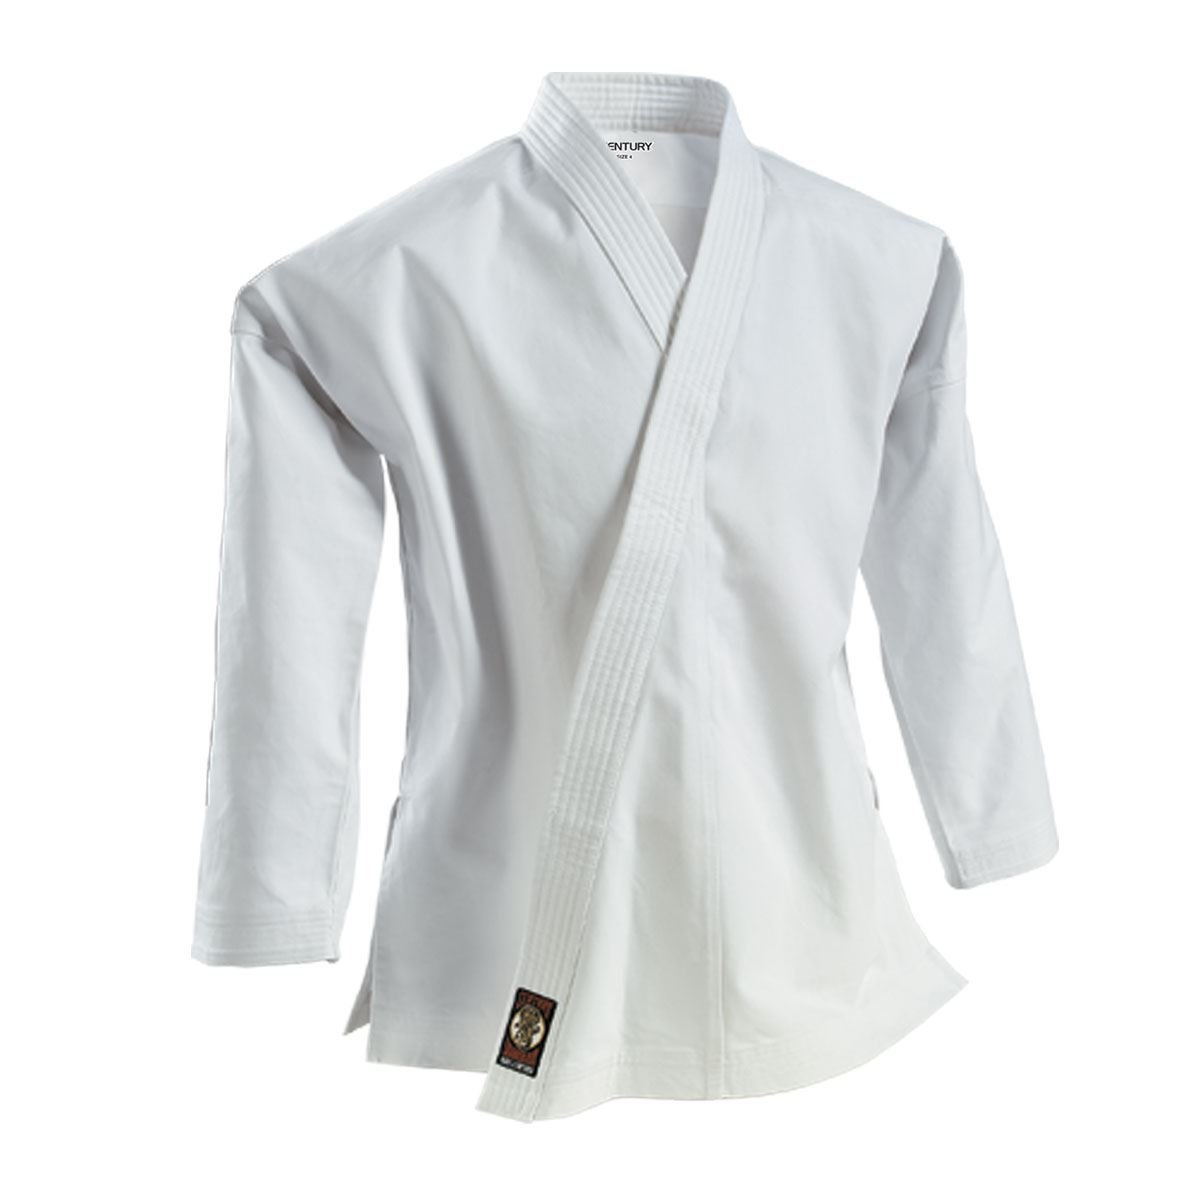 Century Martial Arts 14 oz. Traditional Ironman Heavyweight Martial Arts Karate Jacket - White, 4 - Adult Medium by Century